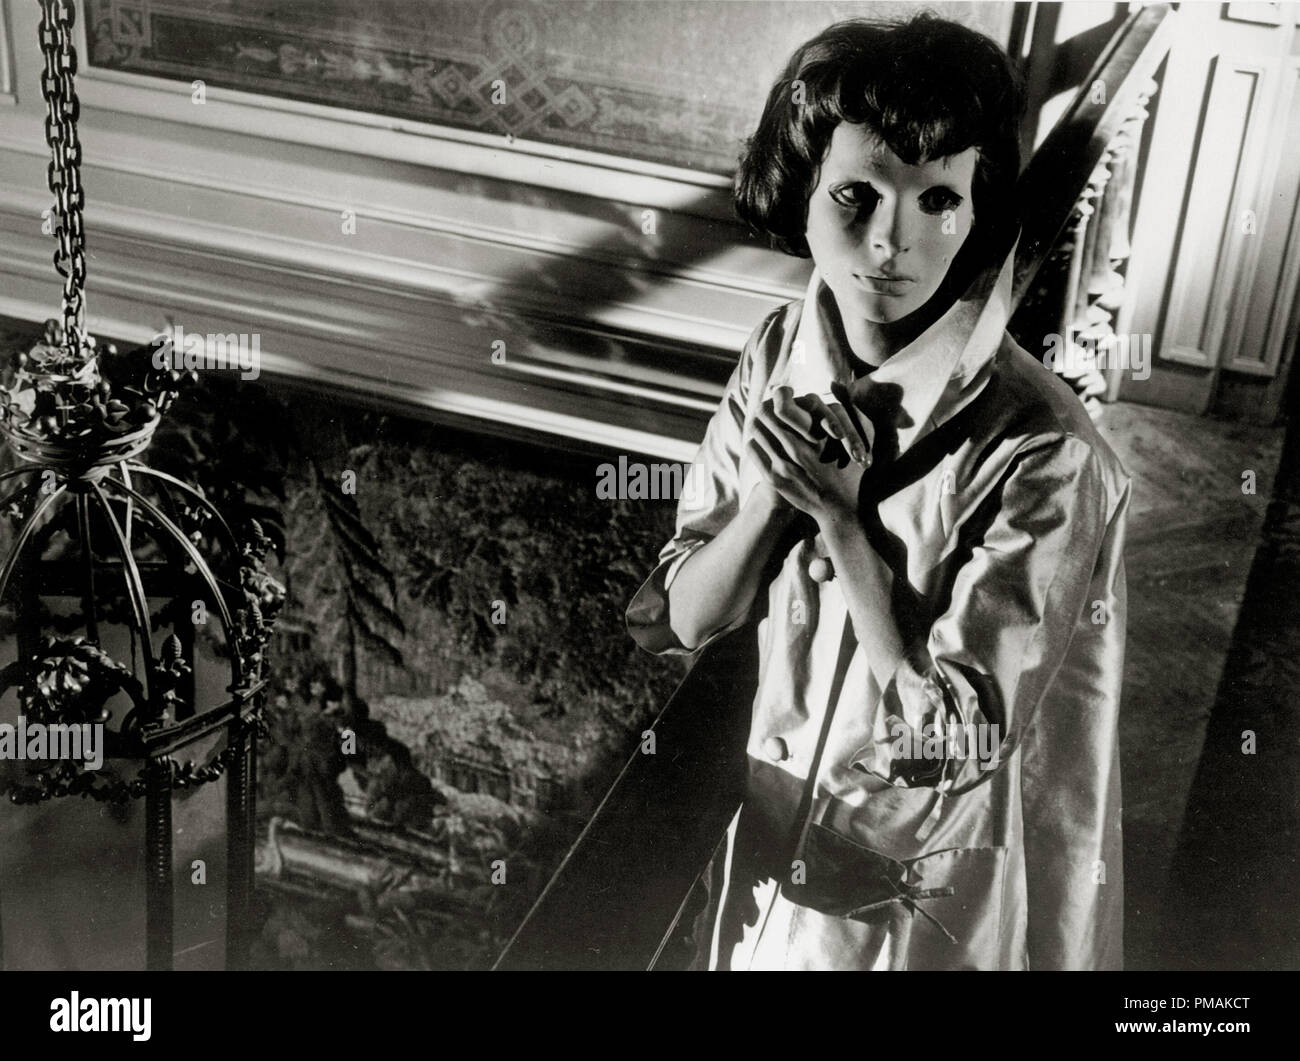 Edith Scob,'Eyes without a Face' (1960) Lux Film  AKA  Les Yeux sans visage    File Reference # 33300_419THA - Stock Image